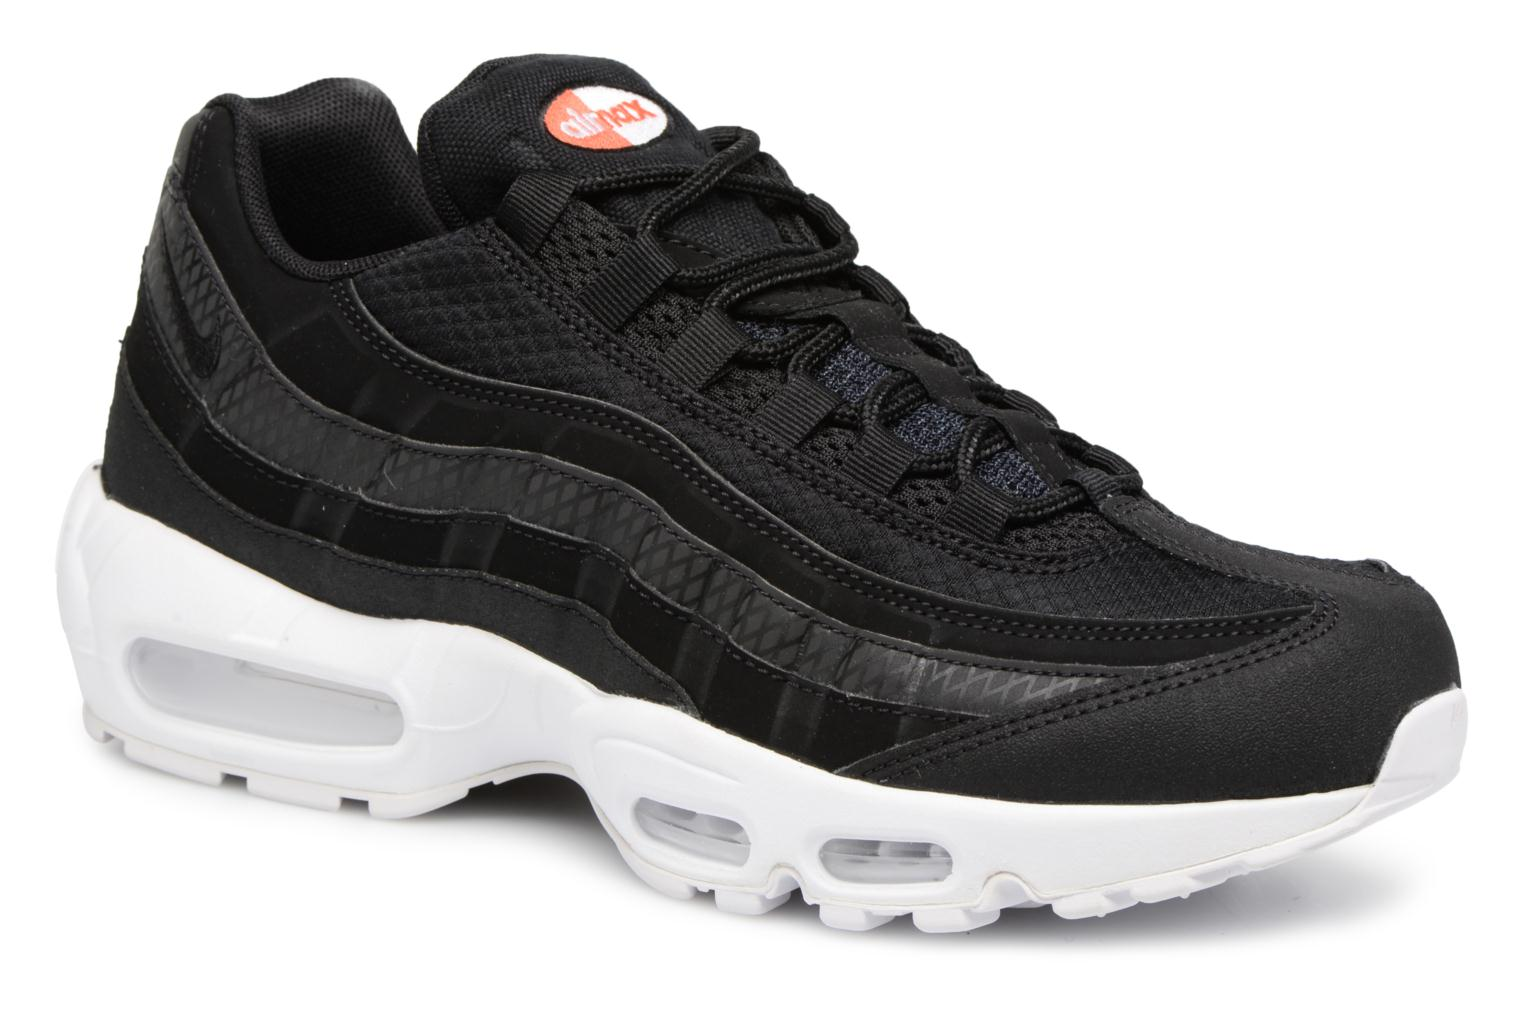 Nike Air Max 95 Premium Se Black/Black-White-Team Orange